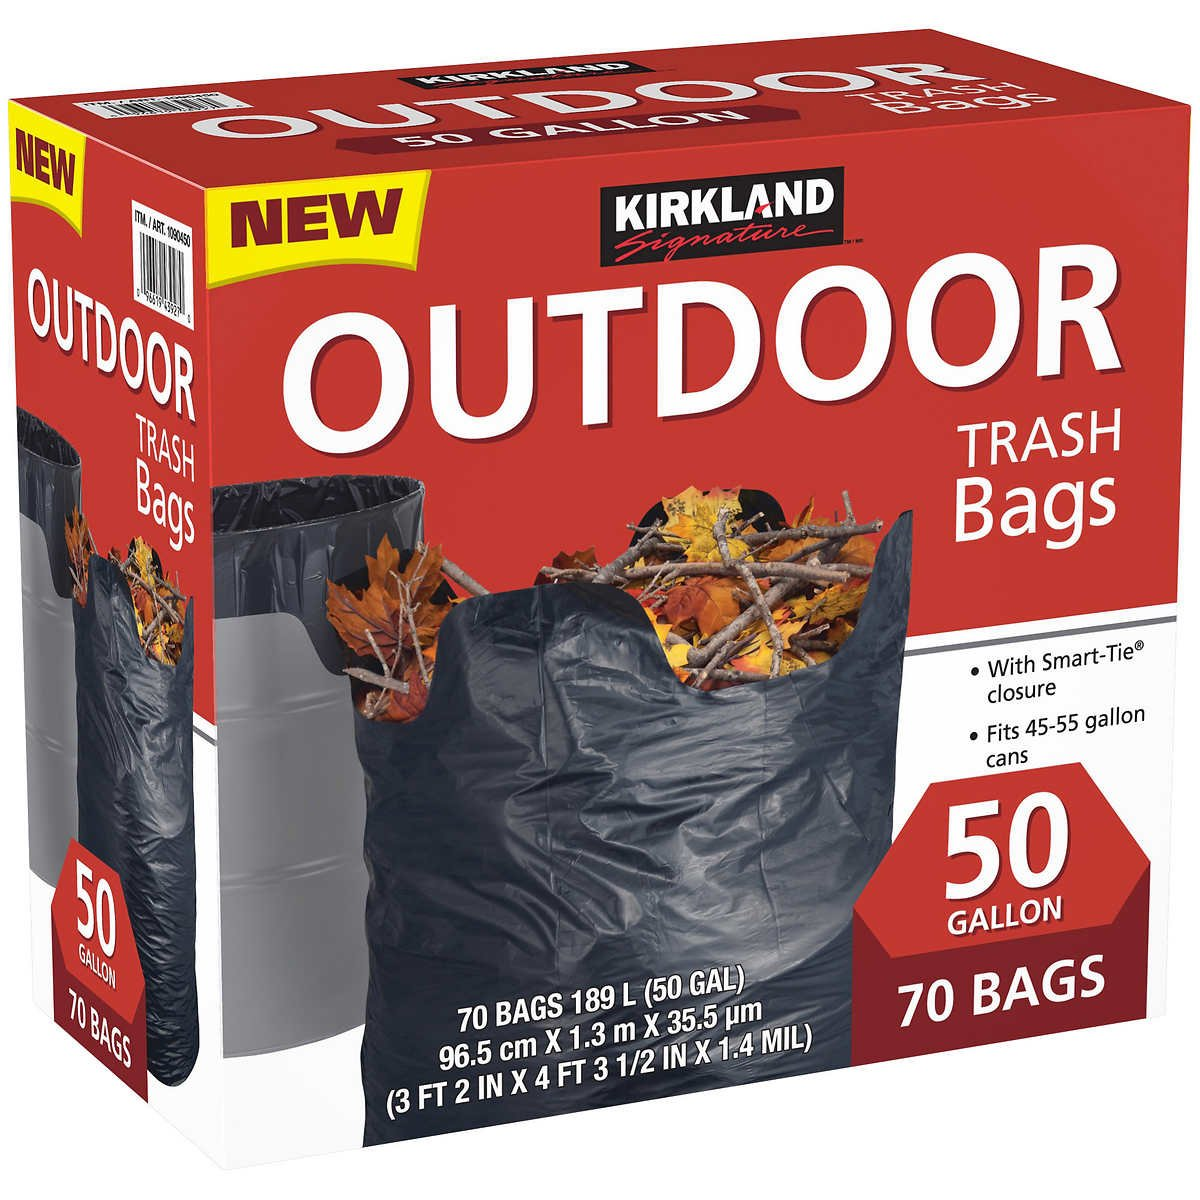 Kirkland Signature Outdoor 50 gallon Trash Bags (70 Bags) (3 Pack(Total 210 Bags, Each 70 Bags)) by Kirkland Signature (Image #1)